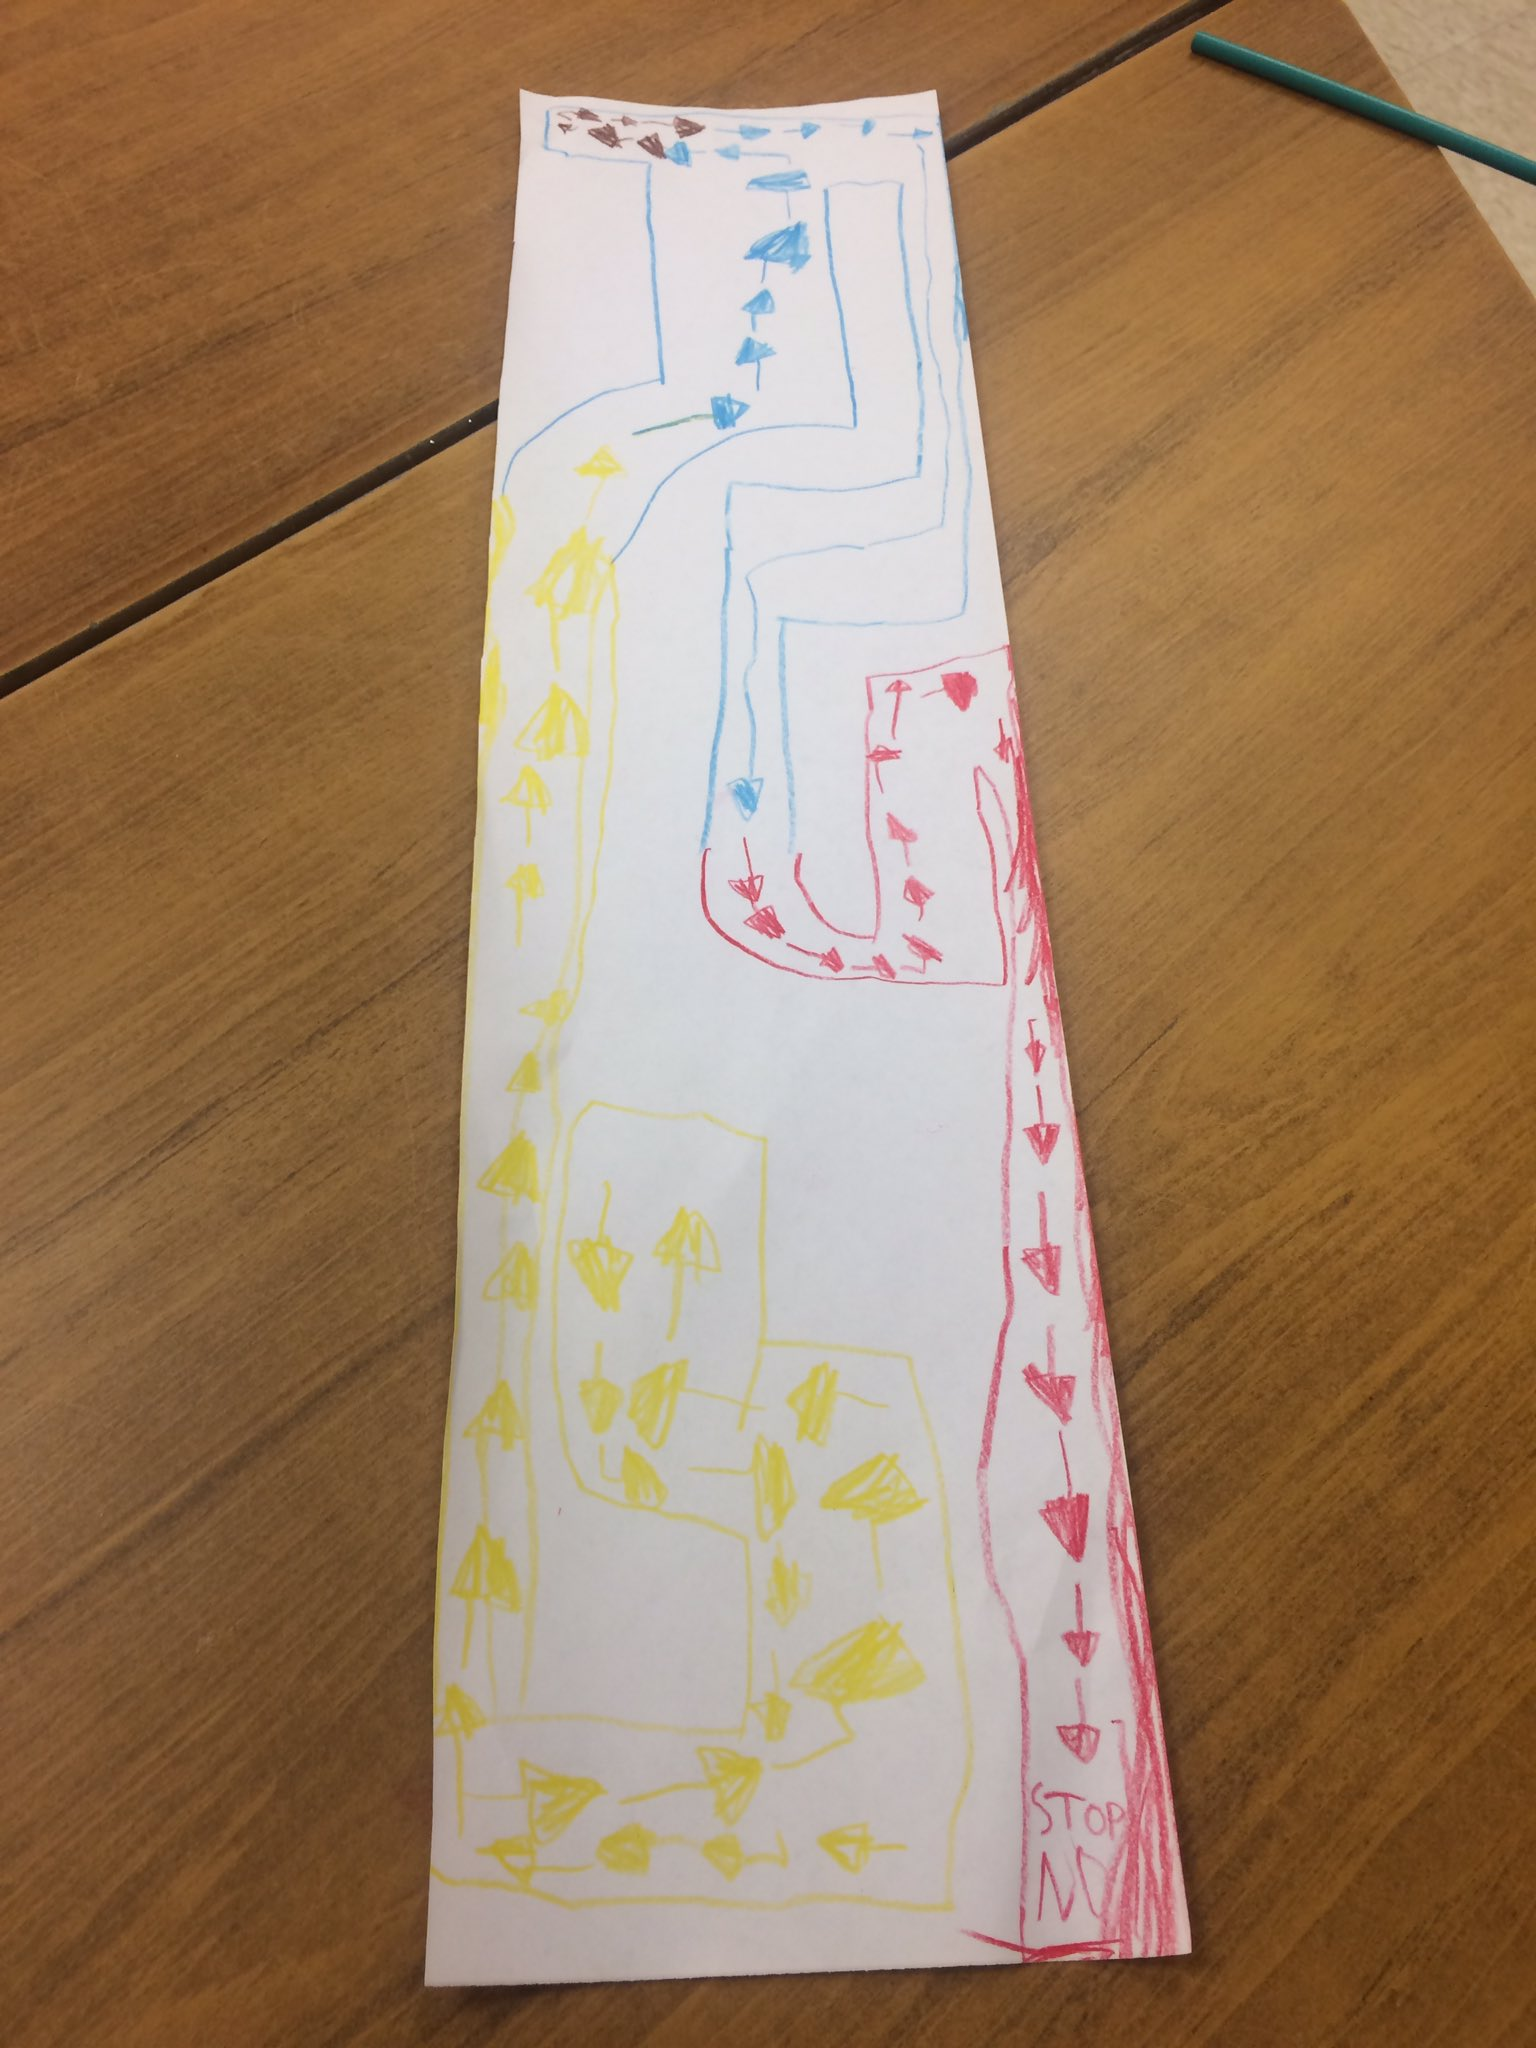 This is a map that a kindergarten student @vkgreerps made for cars he was using. That is creative and innovative #tldsblearns https://t.co/k1BZlEhsV5